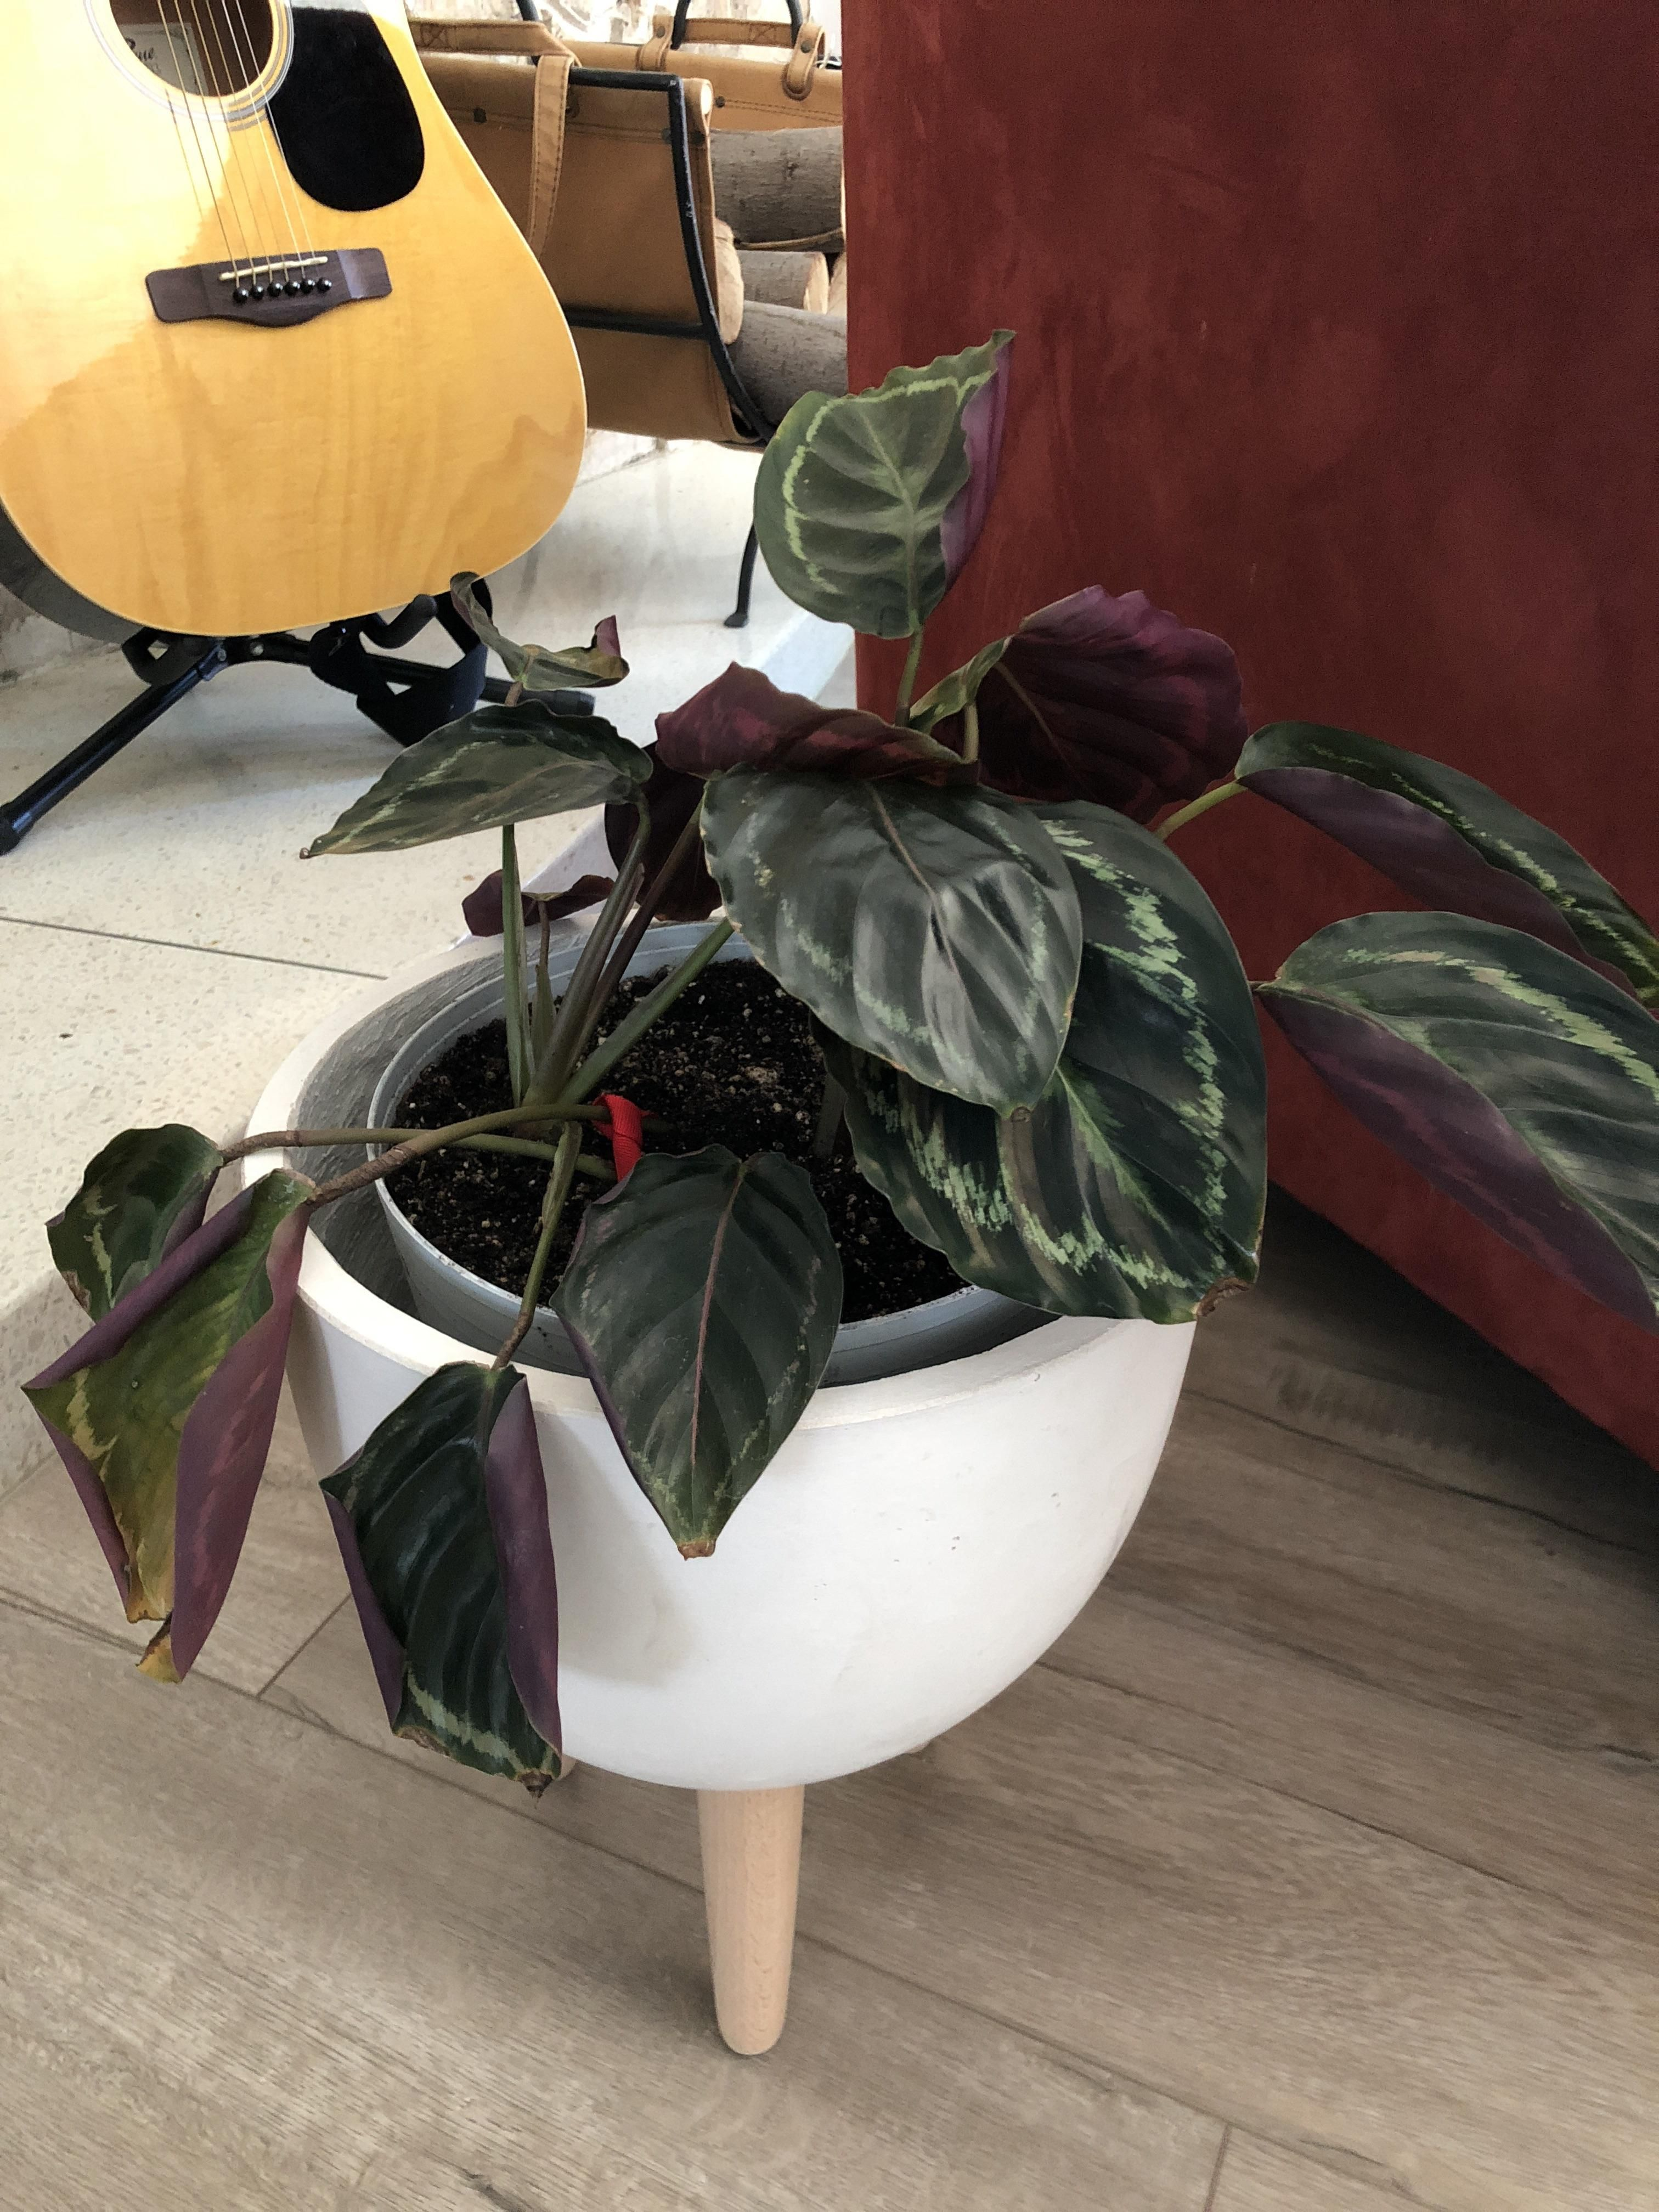 Why Are My Calathea Leaves Curling Causes And Solutions Smart Garden Guide Calathea Plant Calathea Smart Garden